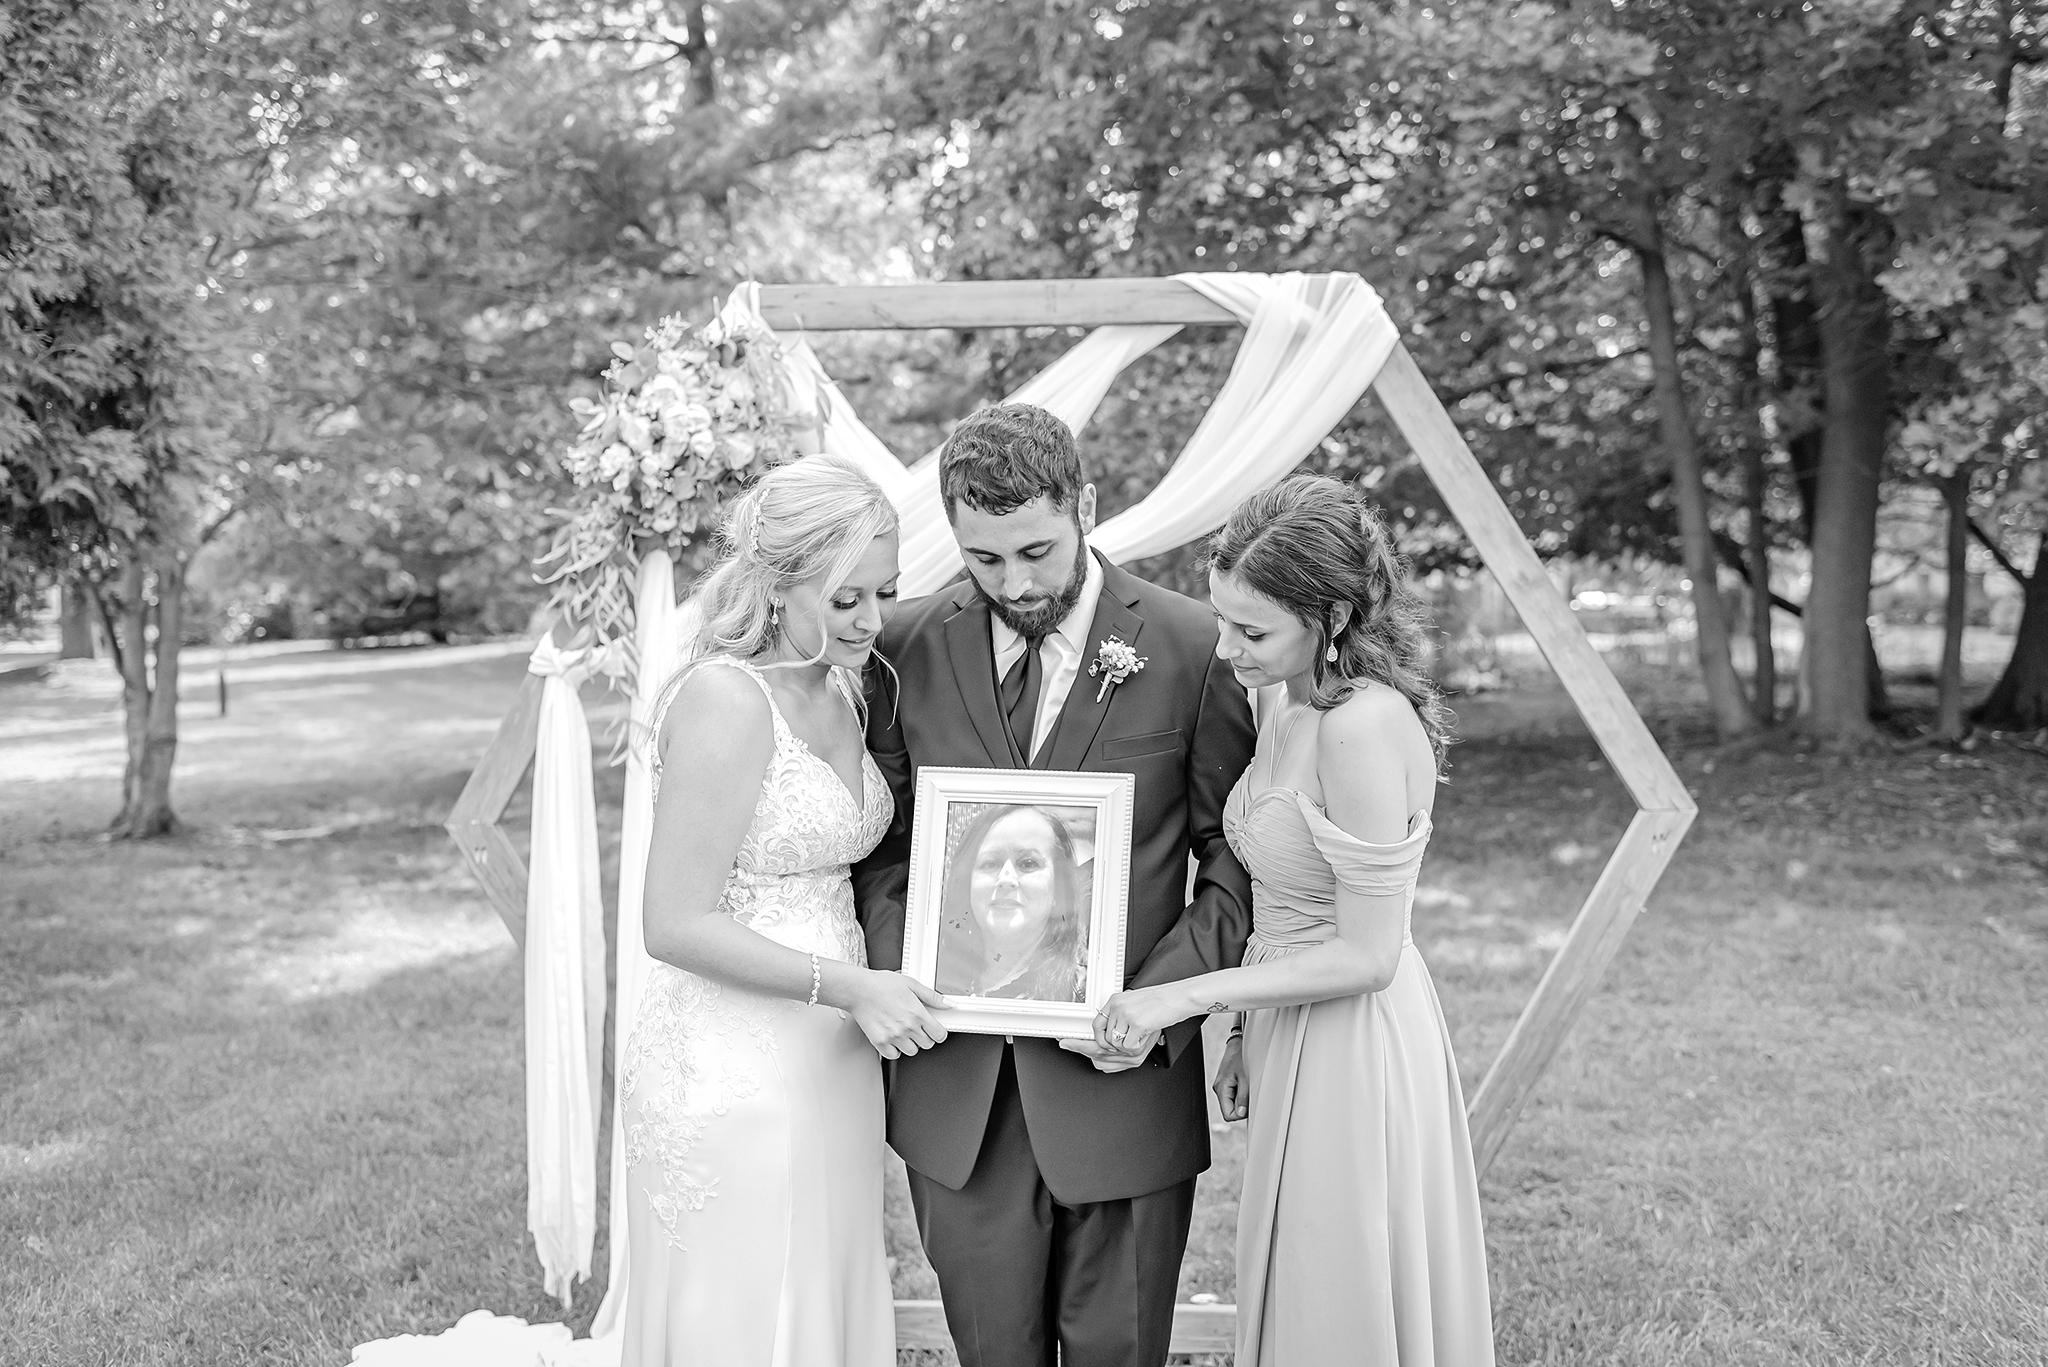 Lindsay-Adkins-Photography-Michigan-Wedding-Photographer-Tecumseh-Michigan-45a